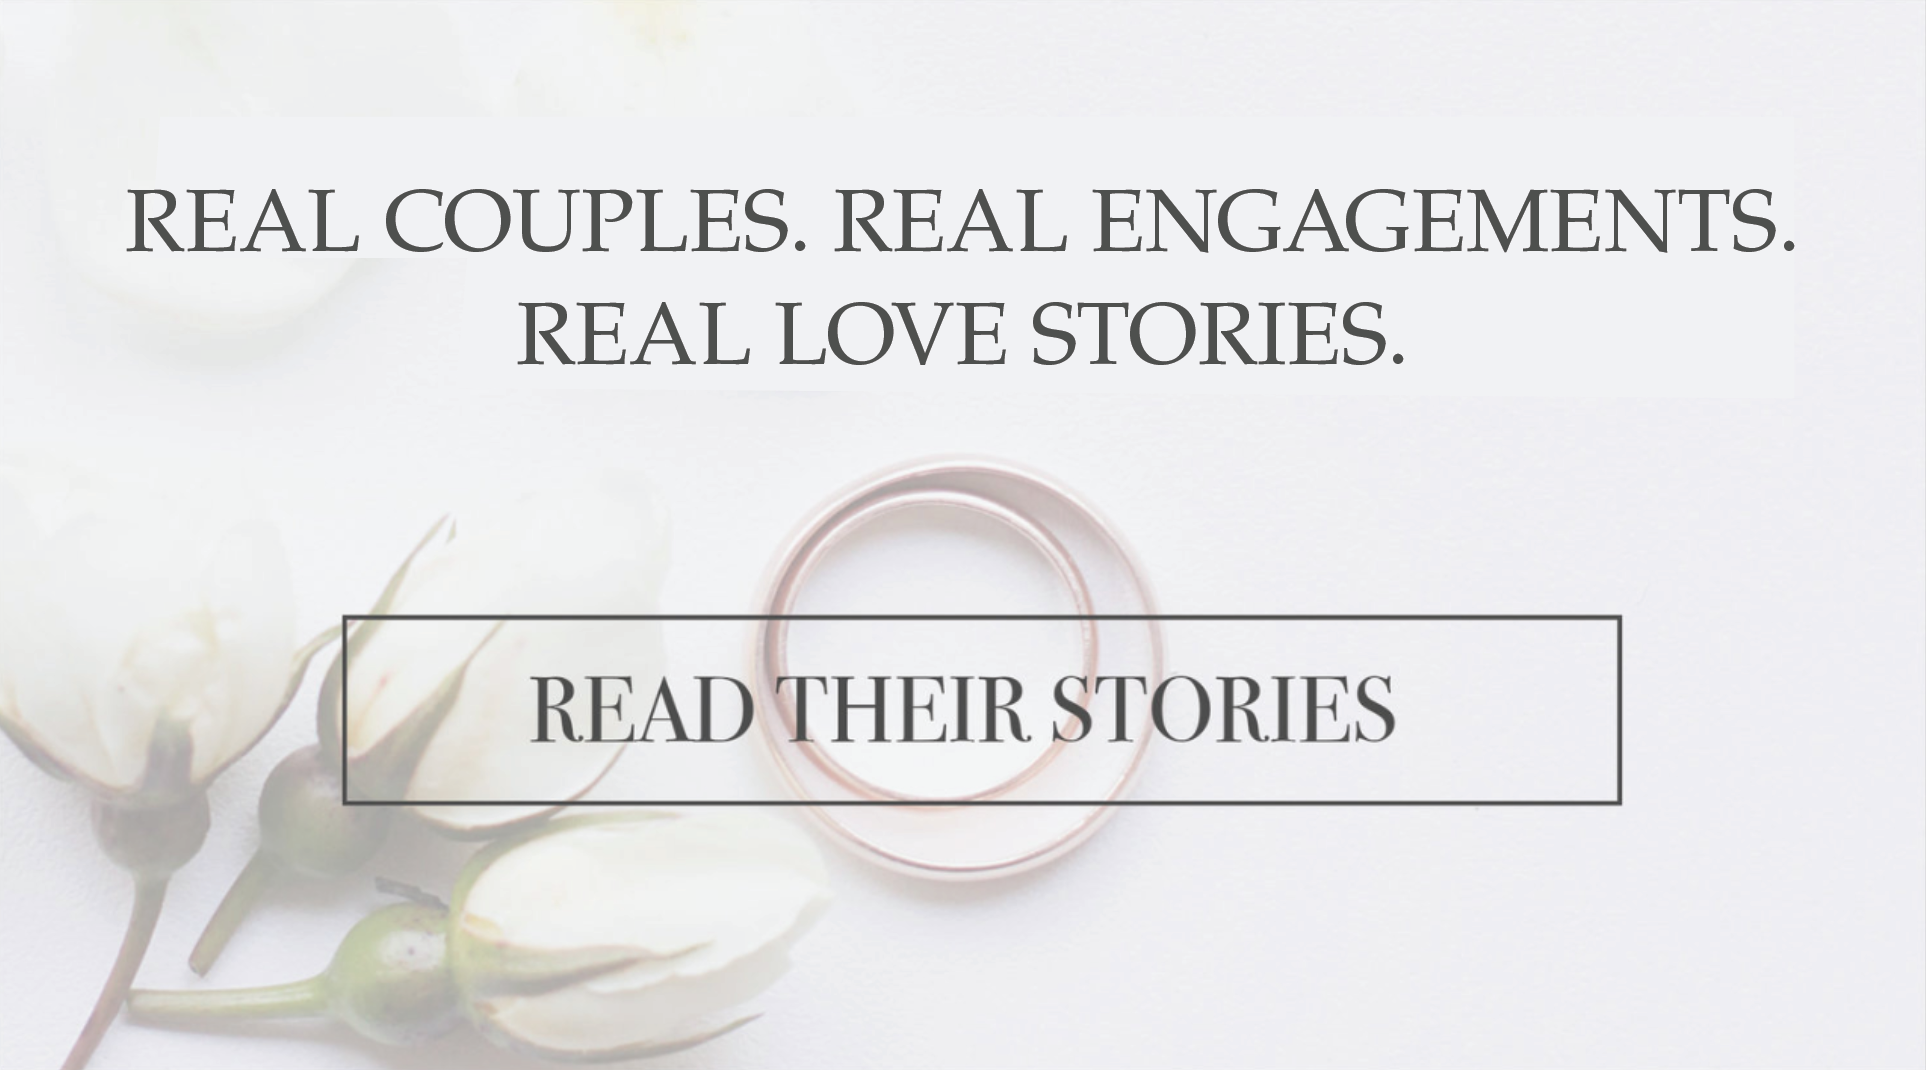 Read the stories of engaged couples from Providence Diamond.